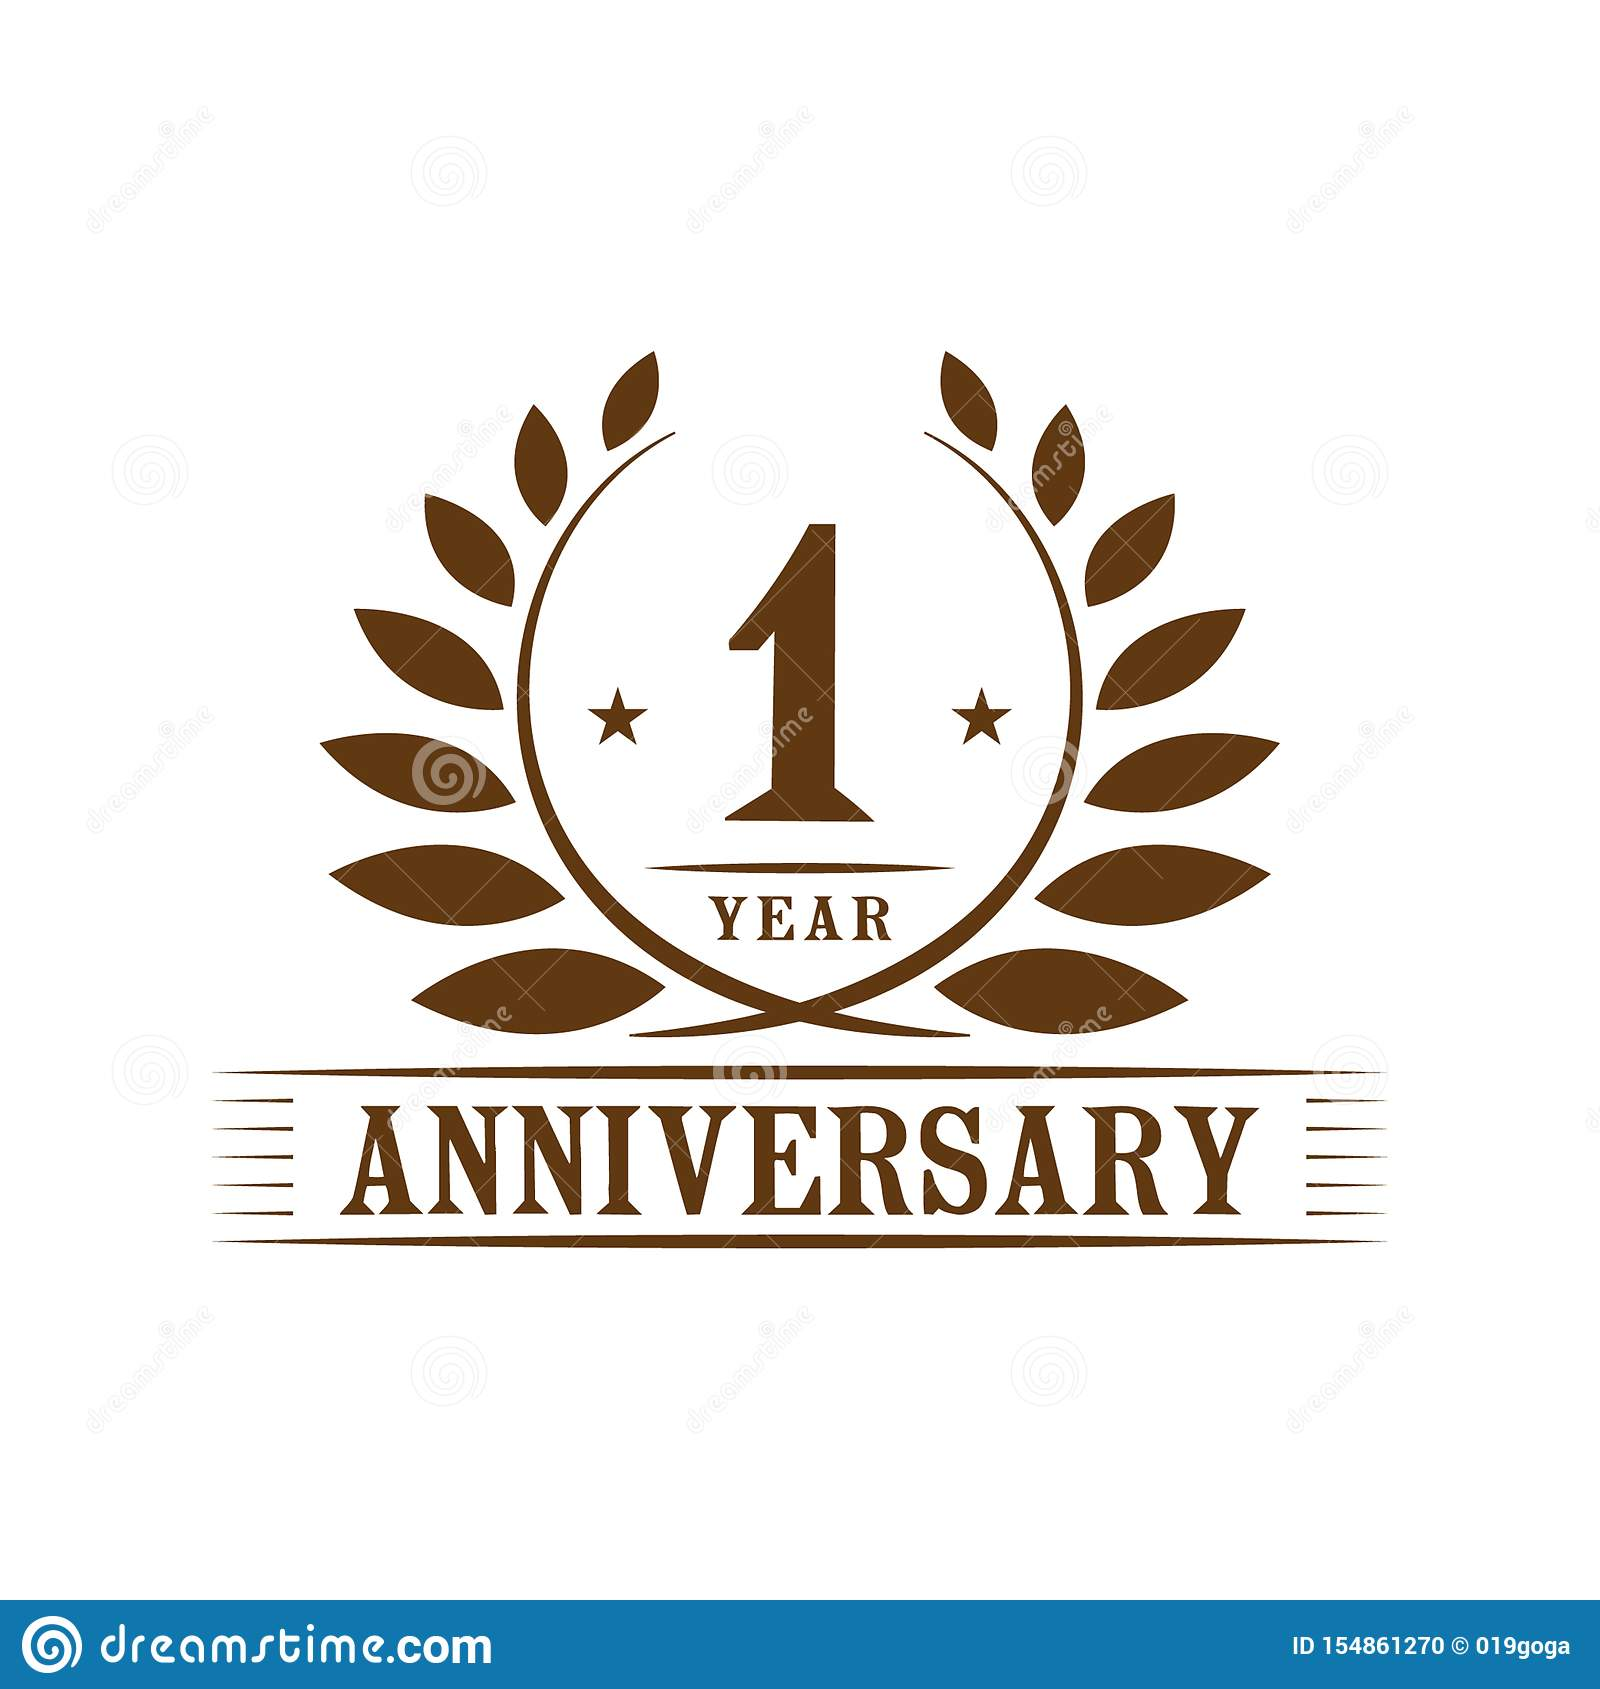 1 year anniversary celebration logo 1st anniversary luxury design template vector and illustration stock vector illustration of ceremony icon 154861270 https www dreamstime com year image154861270